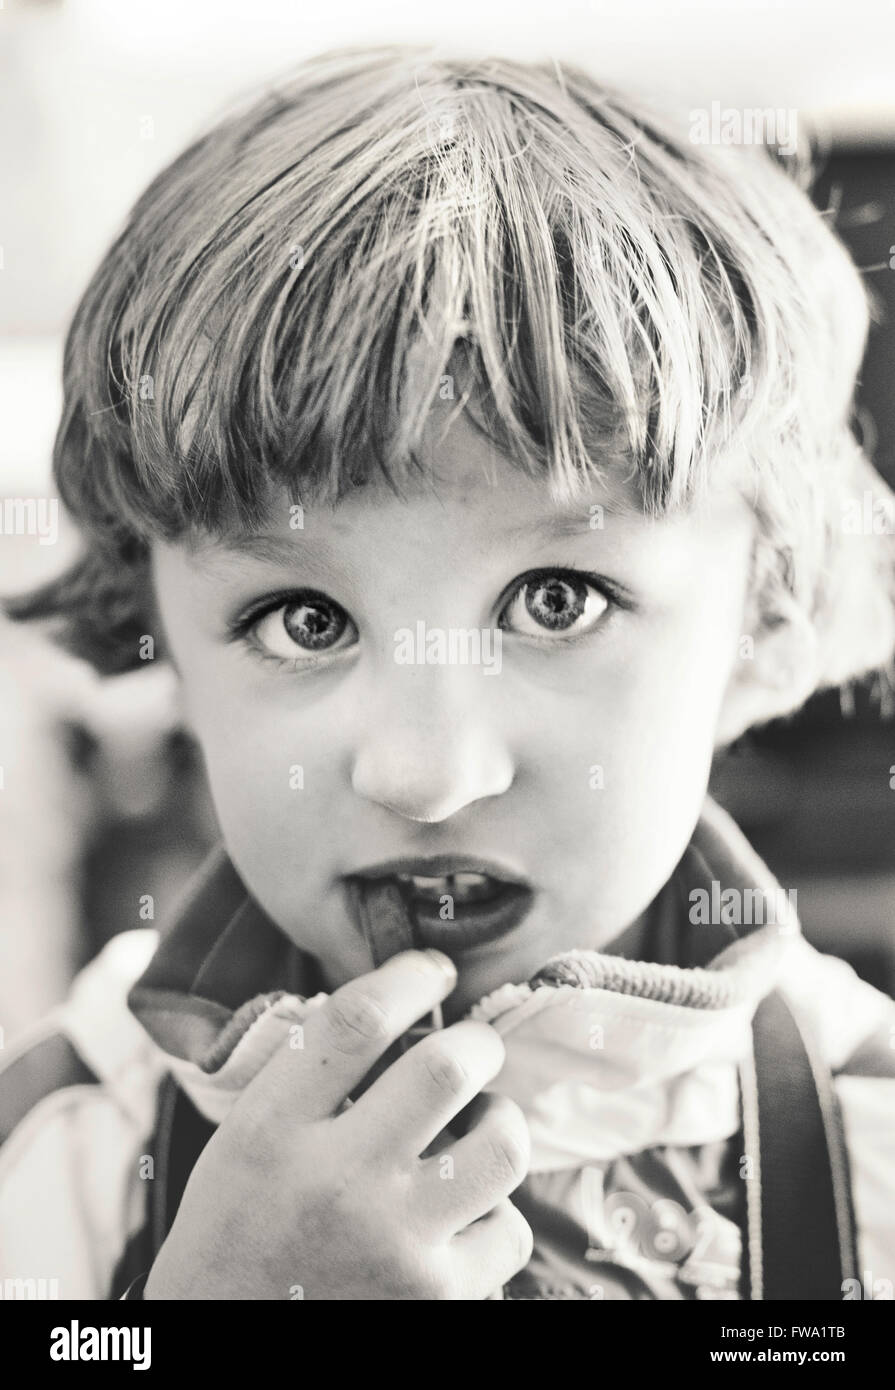 portrait of small boy eating looking at camera Stock Photo